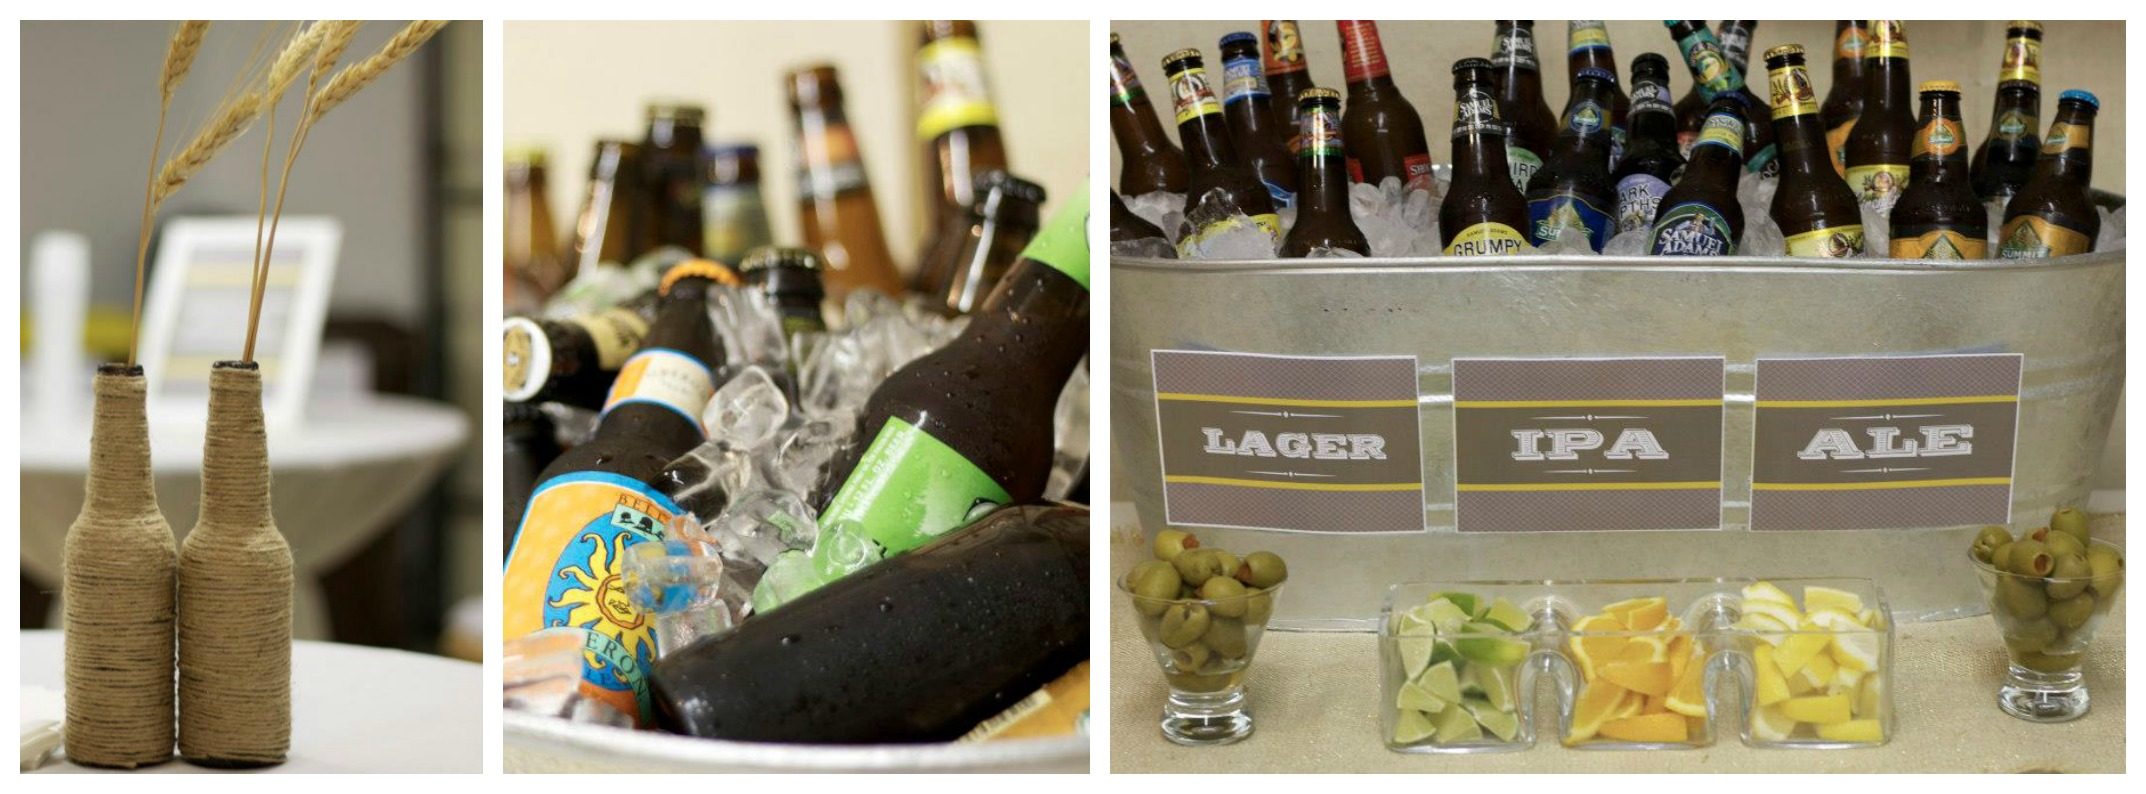 Beer Tasting Party Ideas